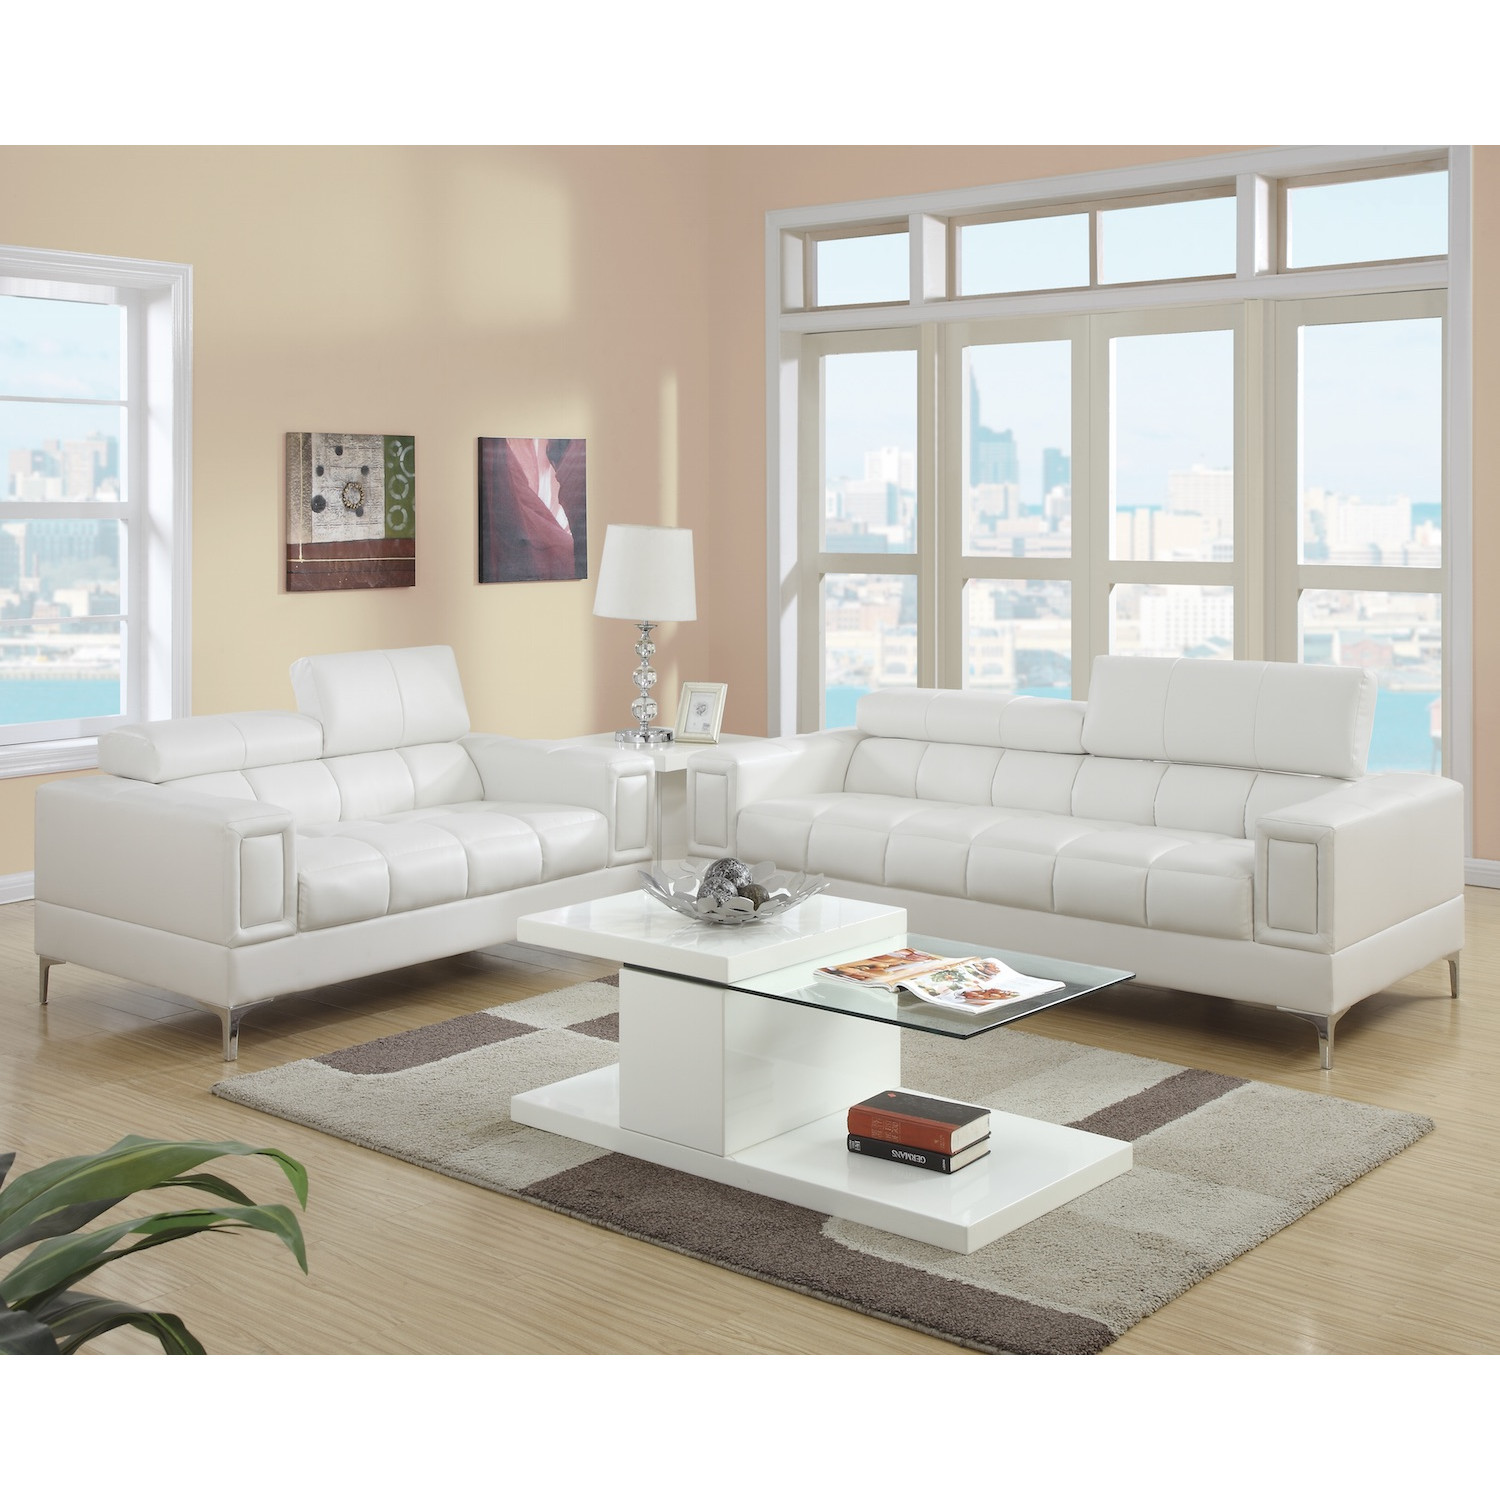 New QUICK VIEW modern living room sets